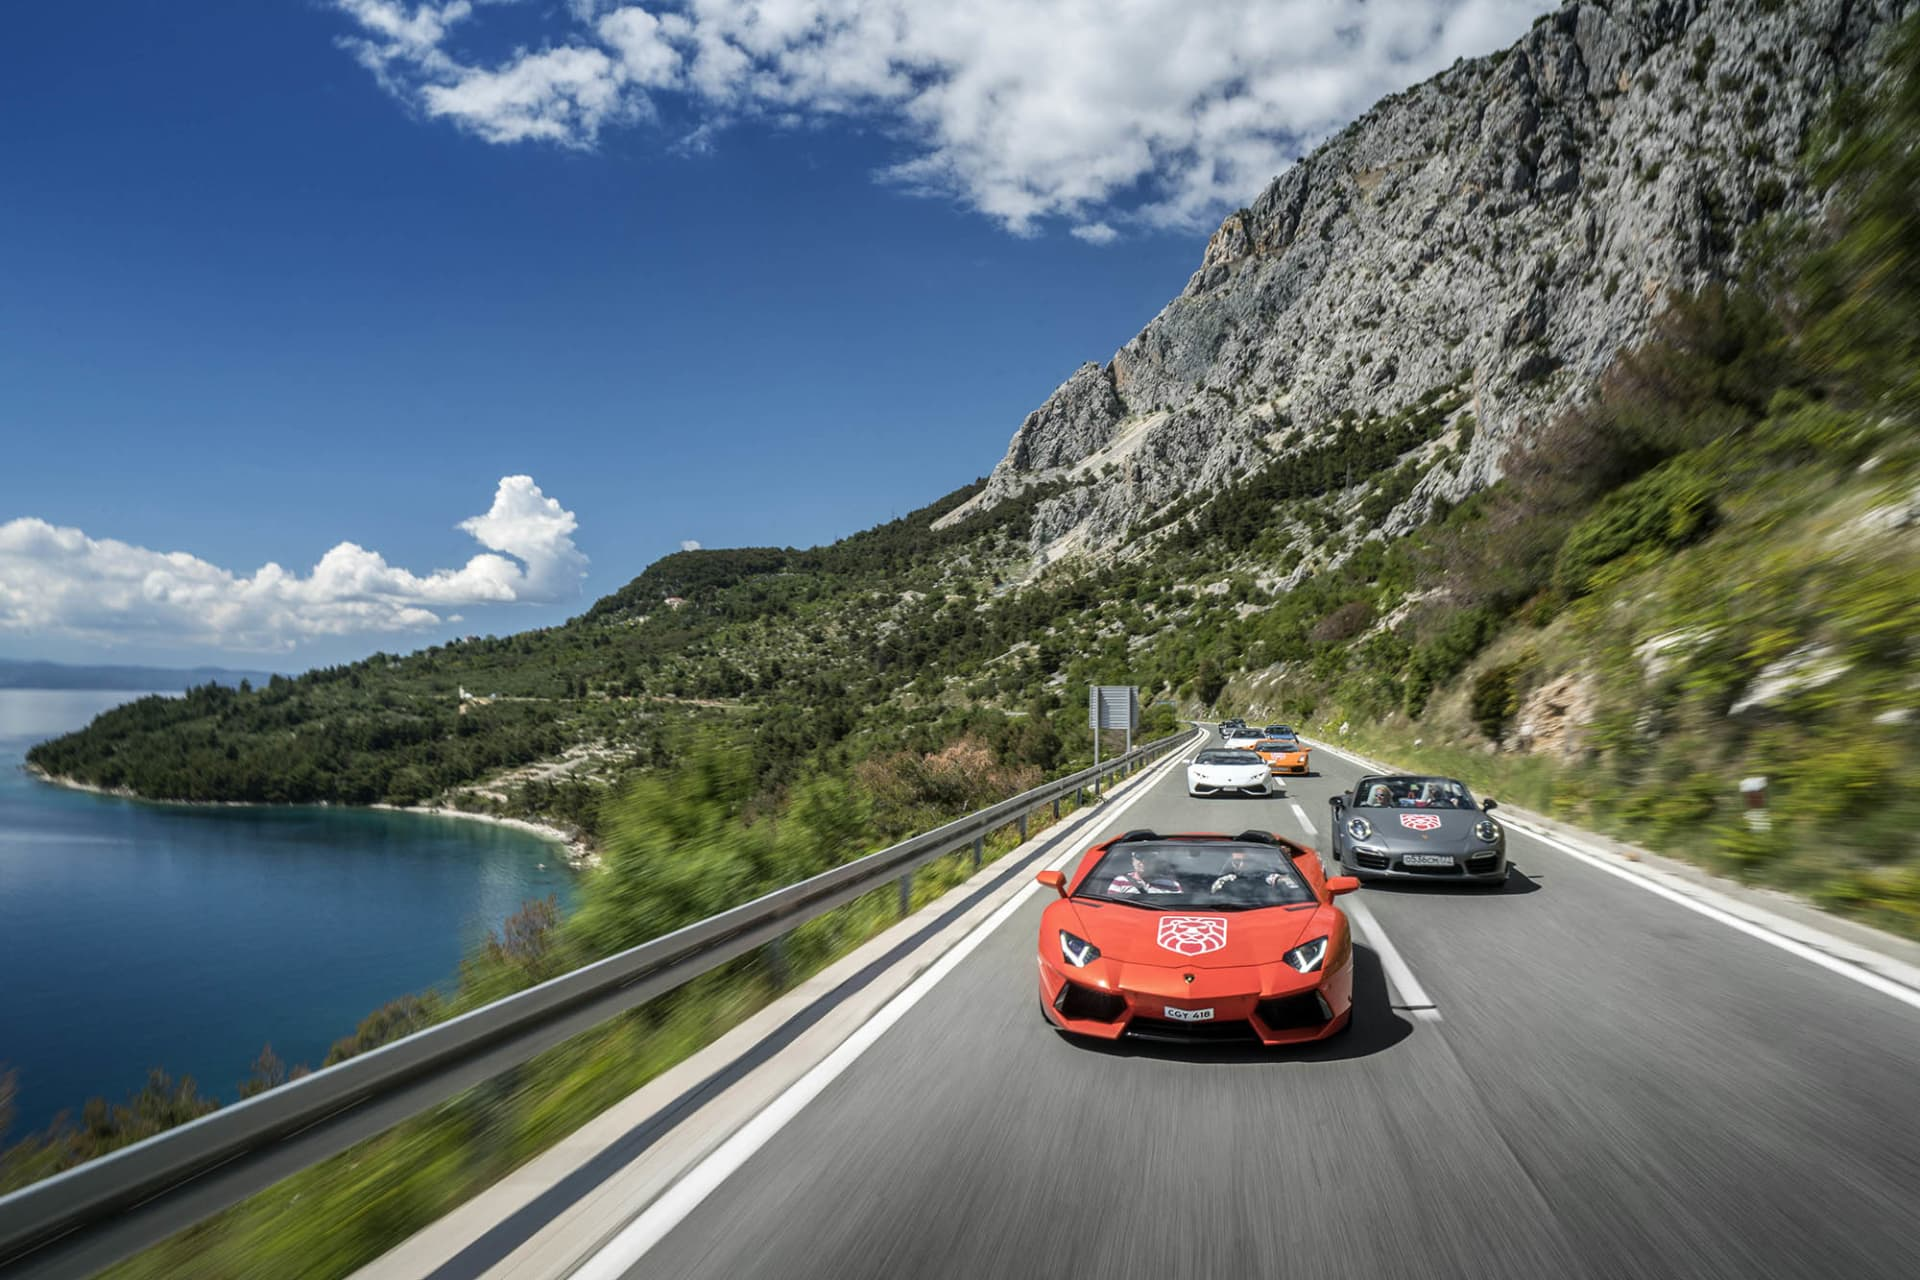 Supercars on the coastal road in Croatia during the annual Gran Turismo Adriatica event.